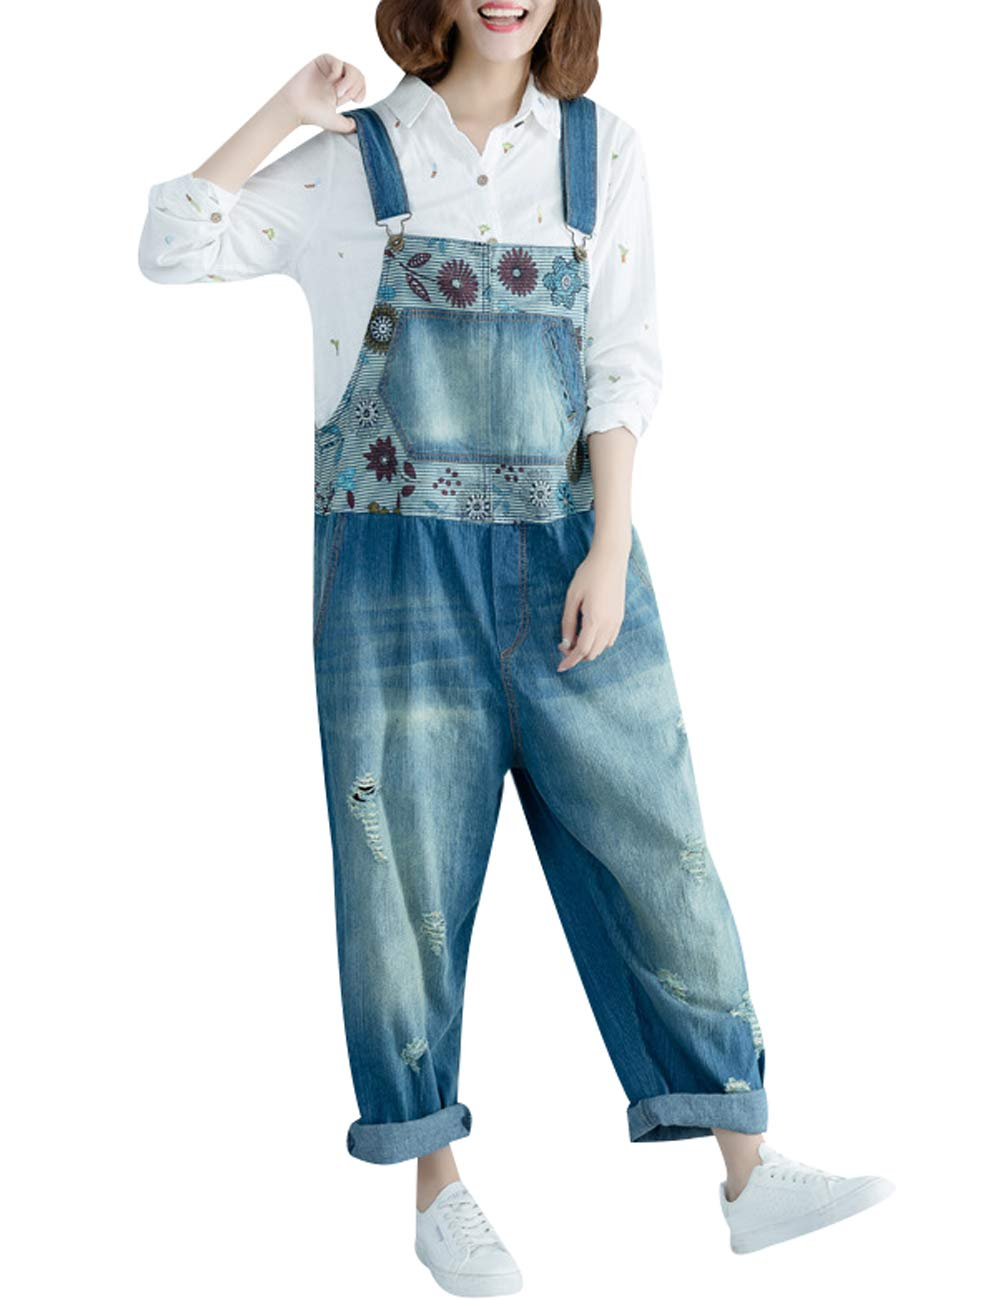 Zoulee Women's Casual Denim Bib Overalls Loose Jumpsuits Rompers Jeans Harem Pants Style 6 Blue by Zoulee